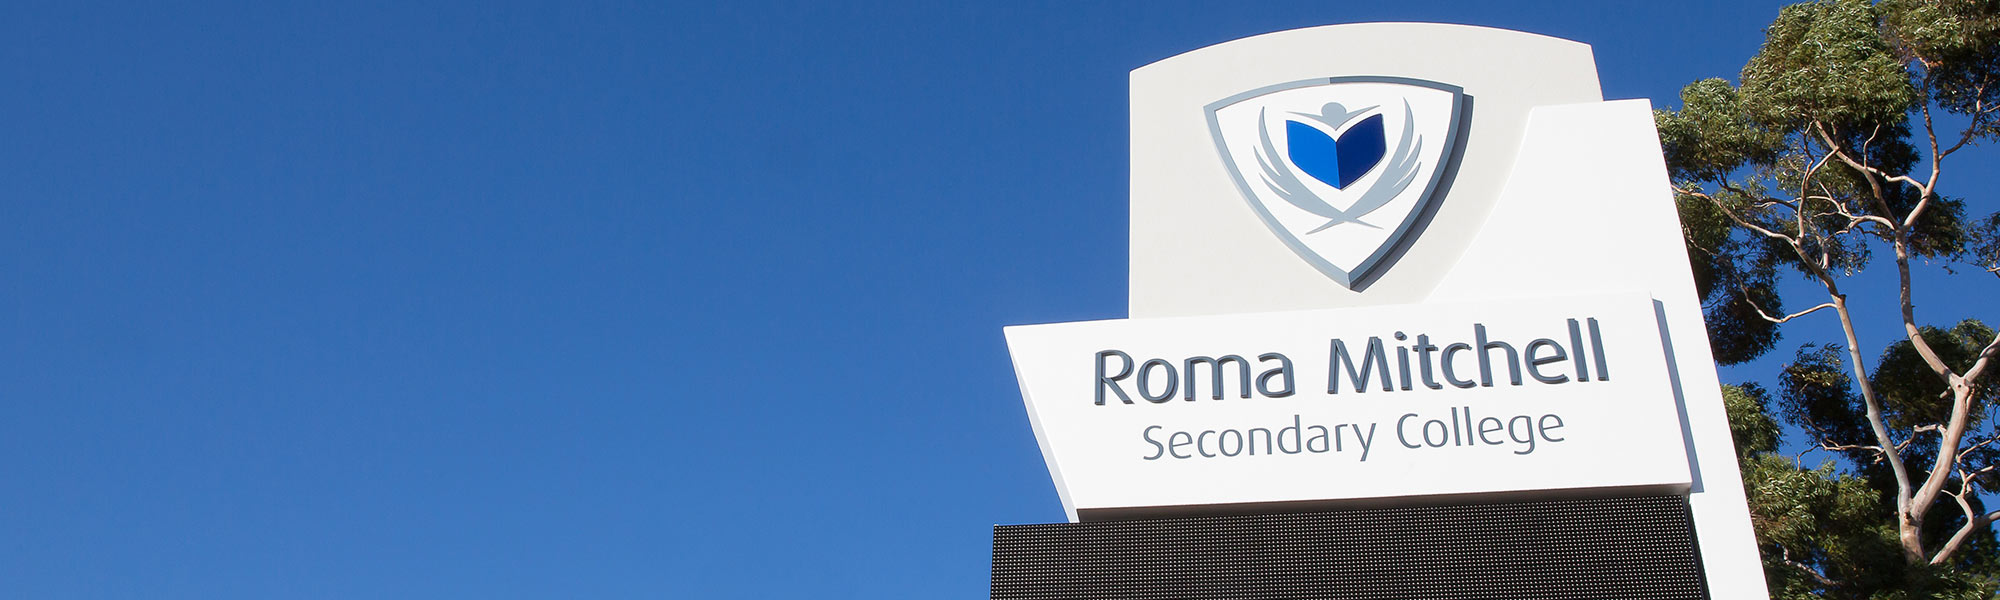 Roma Mitchell Secondary College Signage